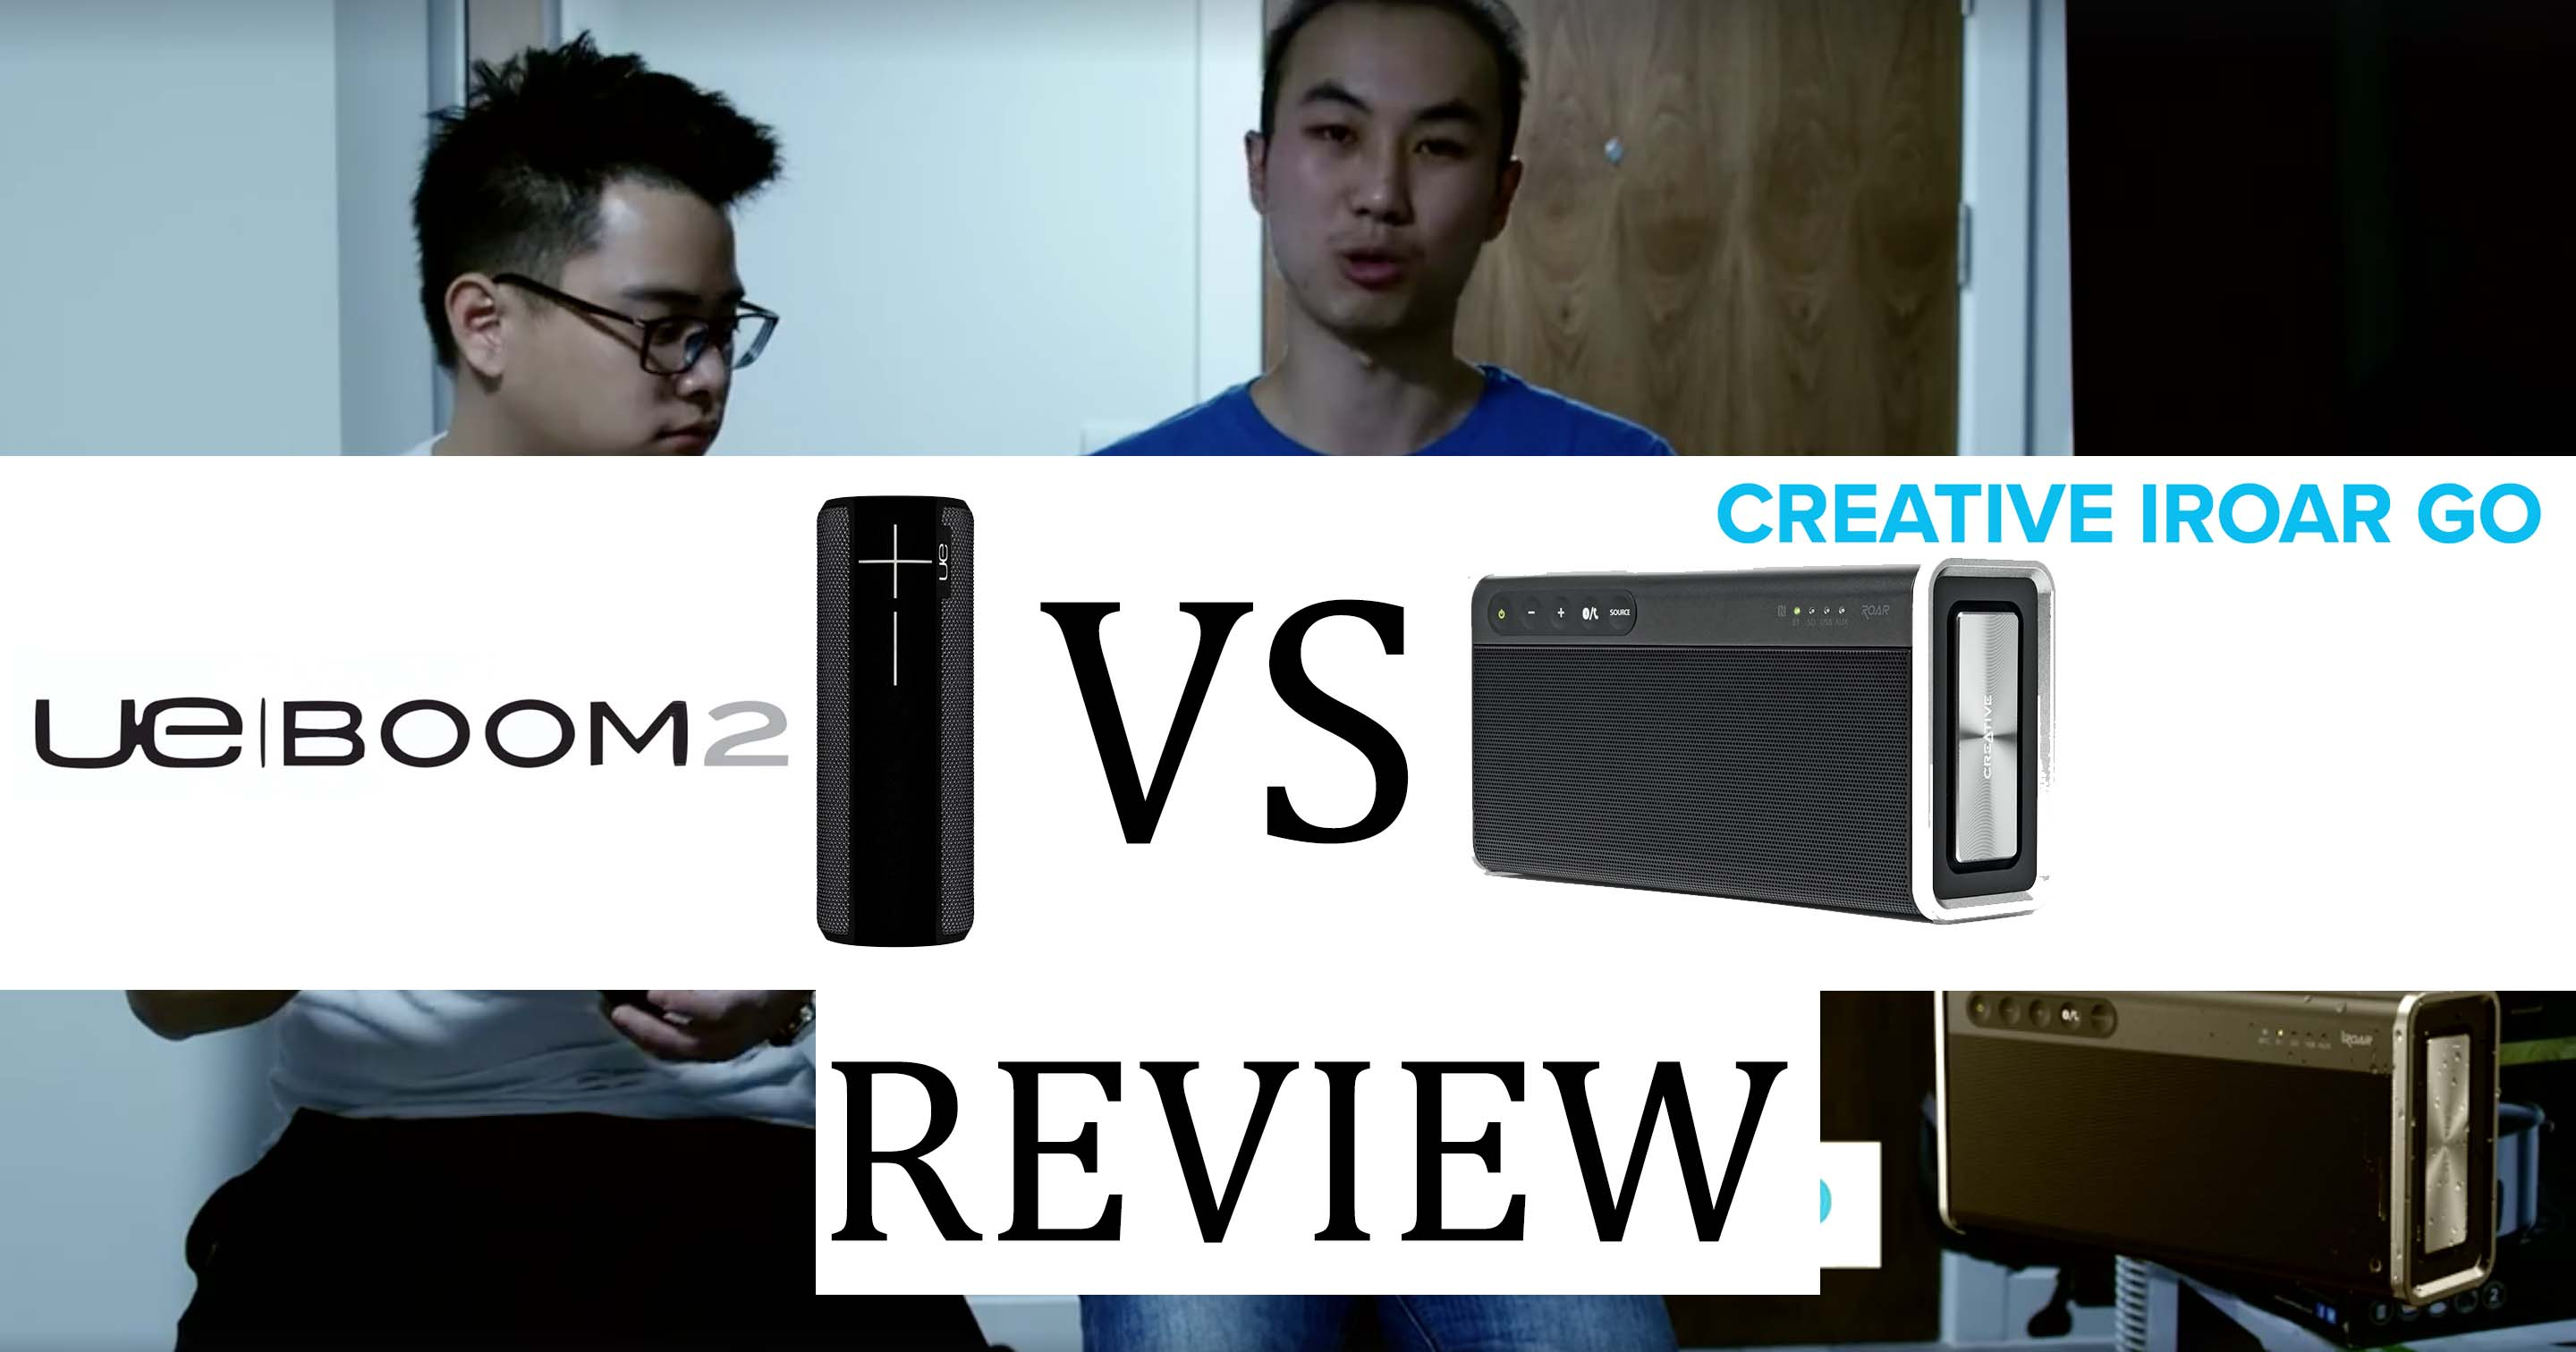 UE Boom 2 vs Creative iRoar Go Review post image